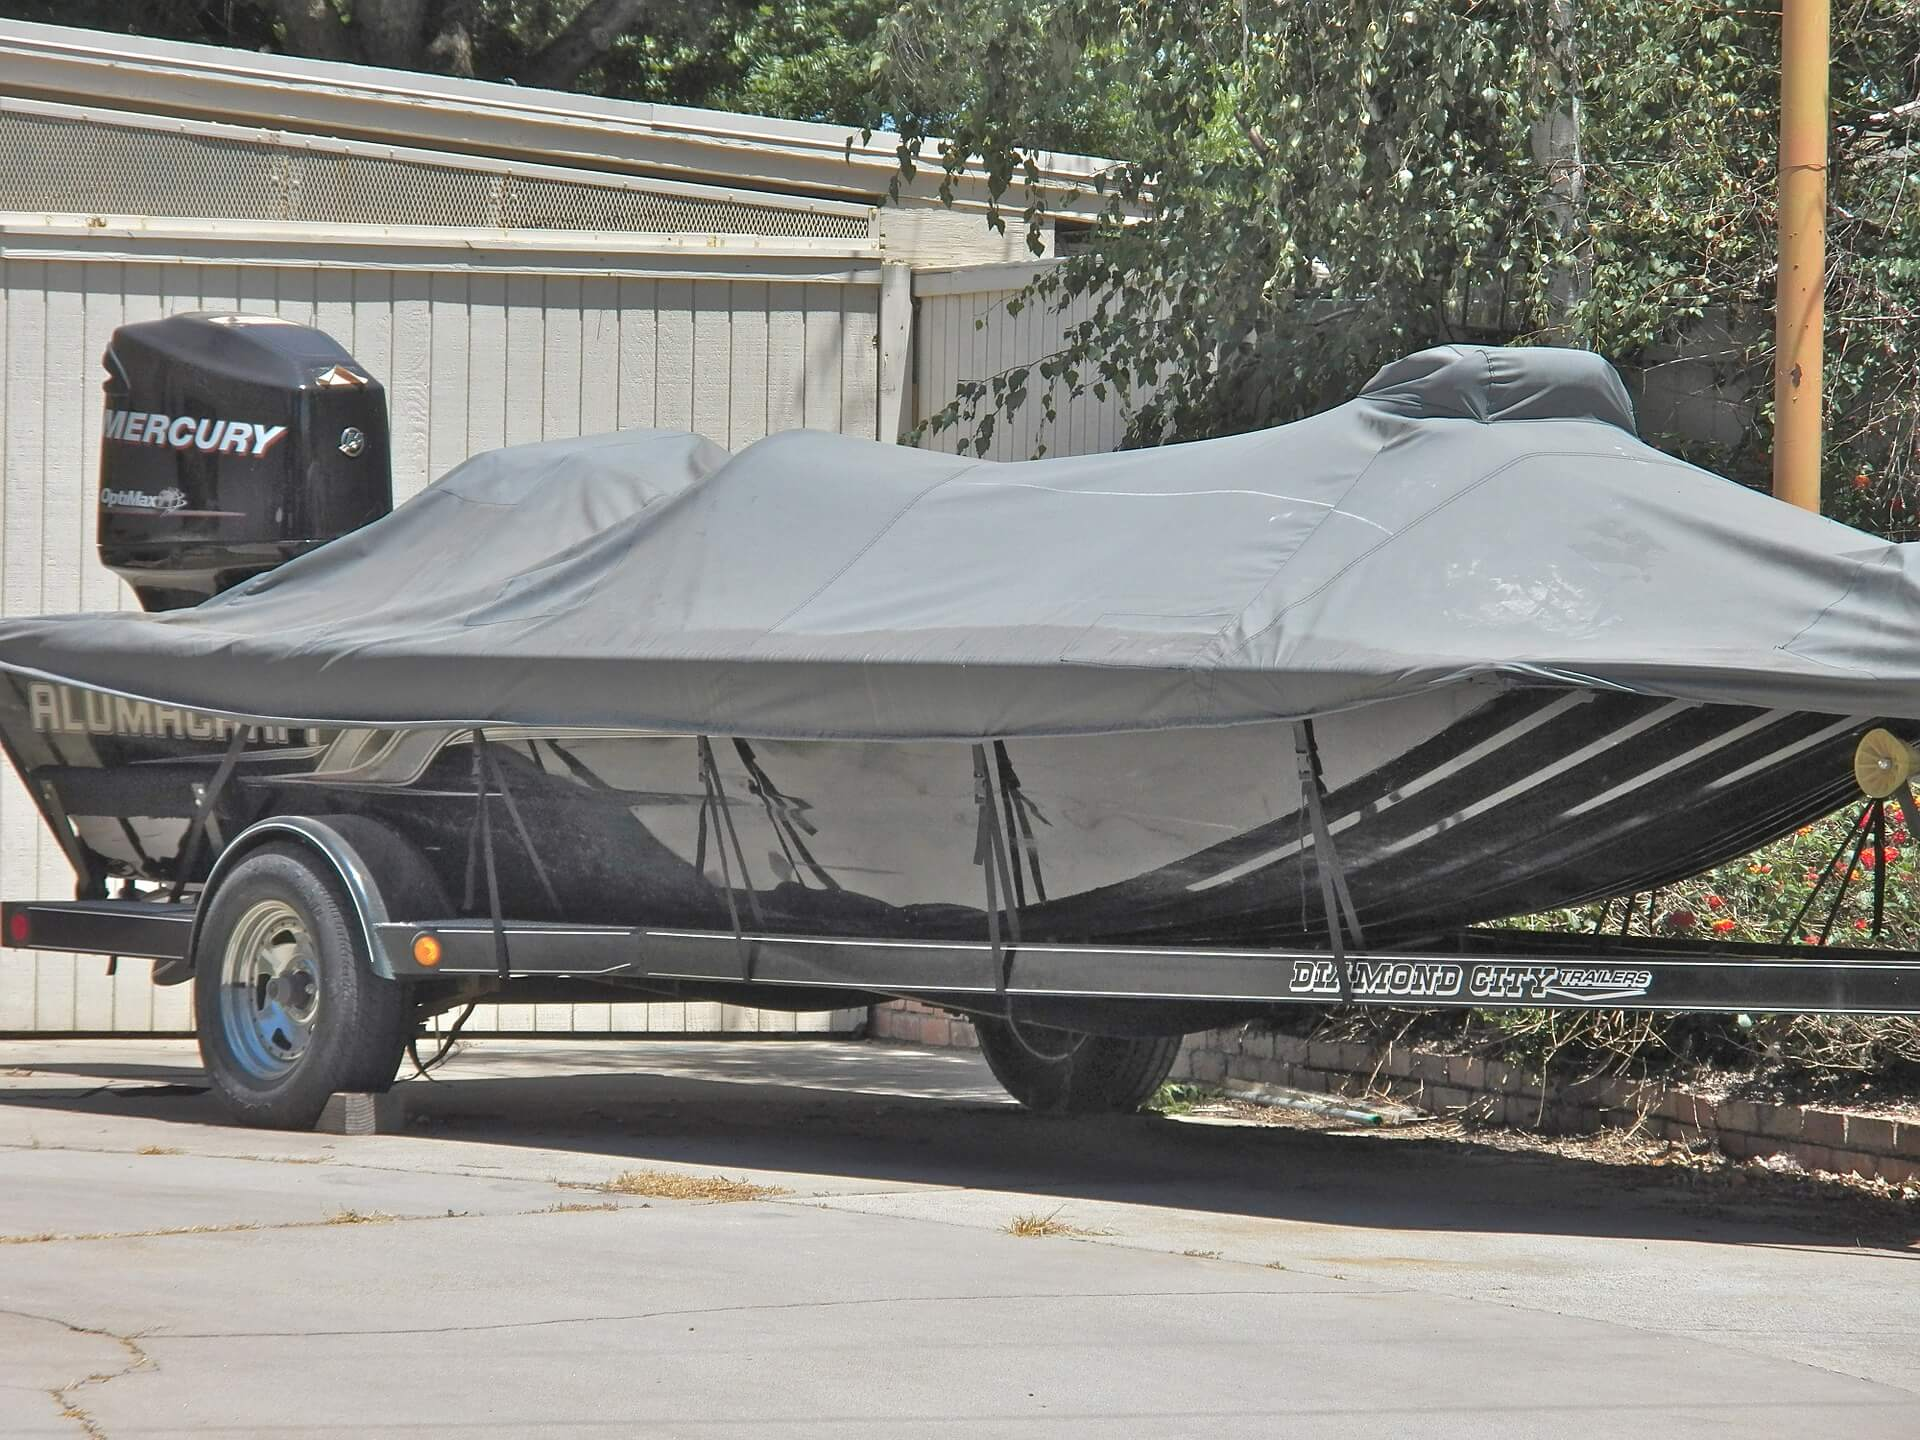 how to buy boat trailers - buying a trailer - boat trailer - trailers